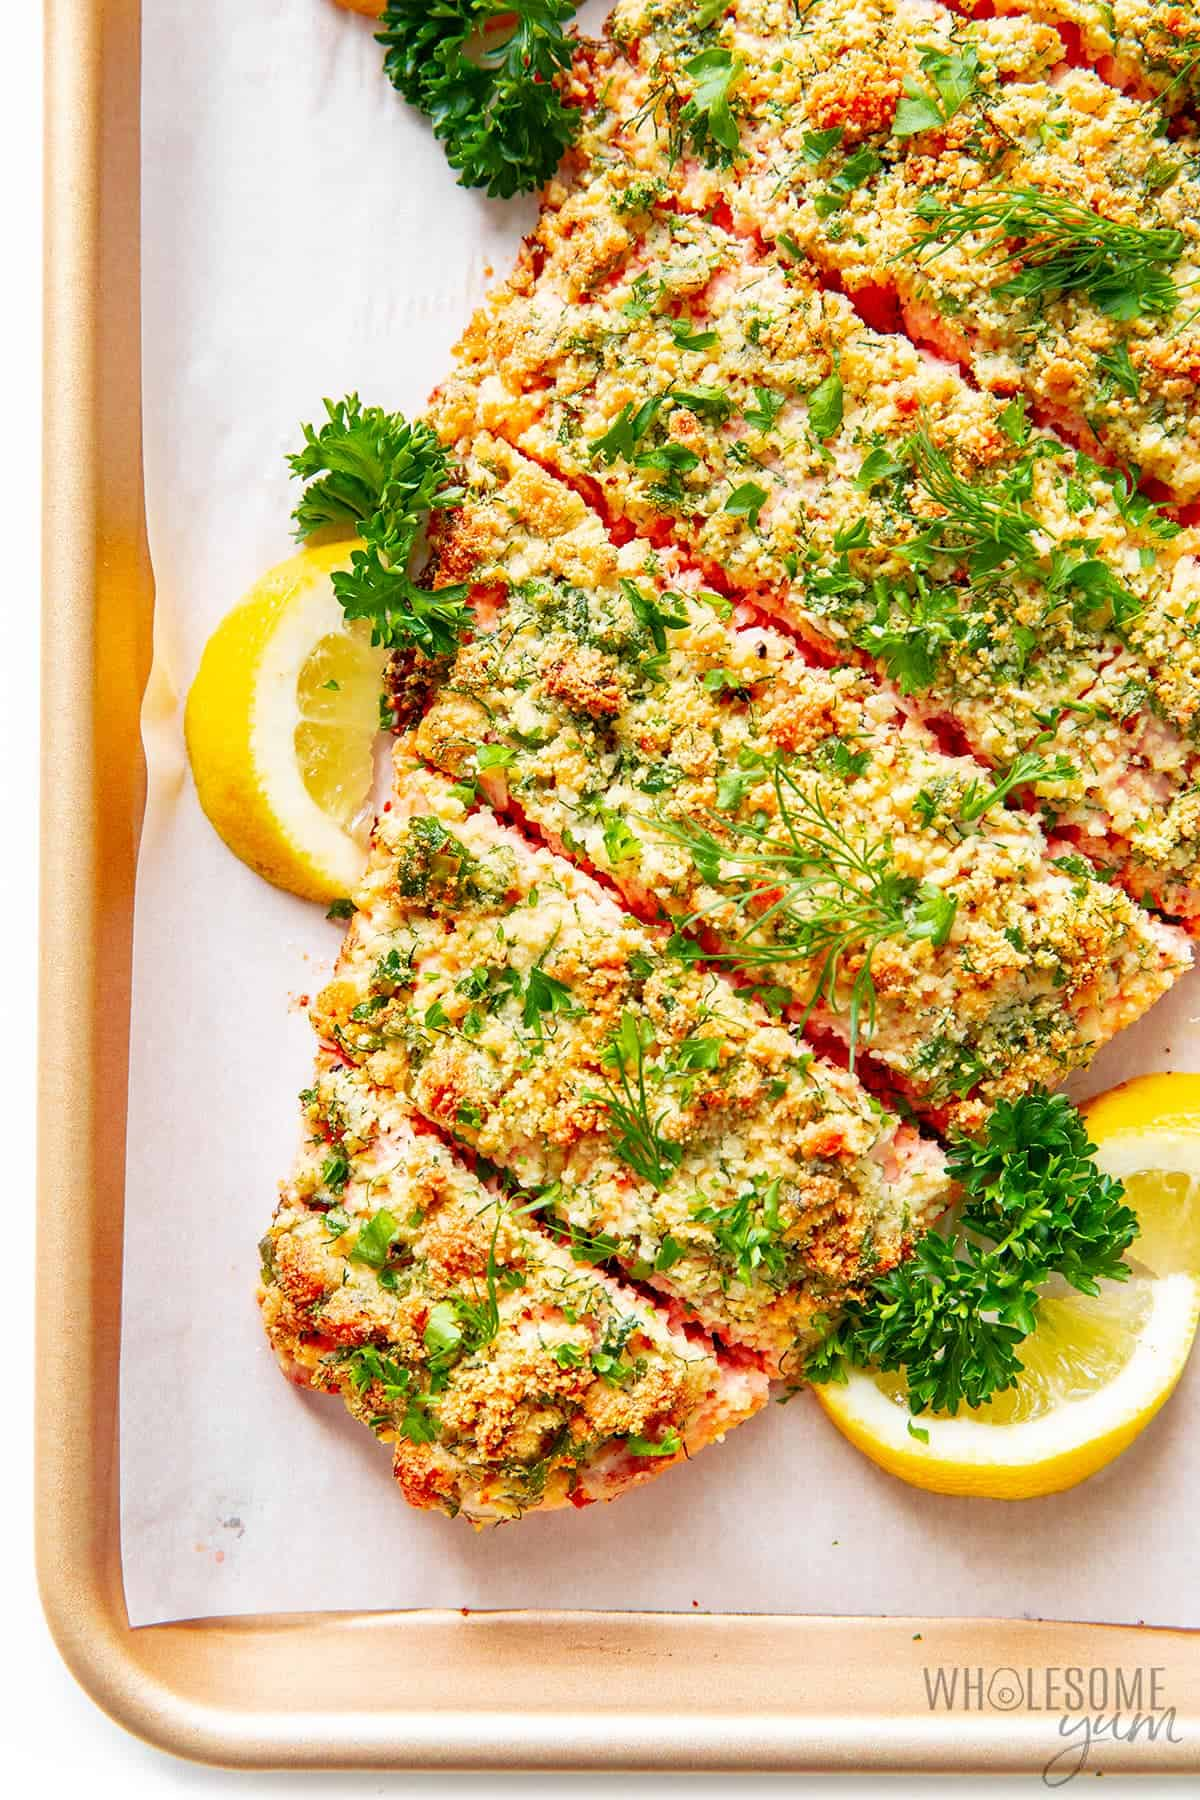 Baked parmesan crusted salmon on a baking sheet